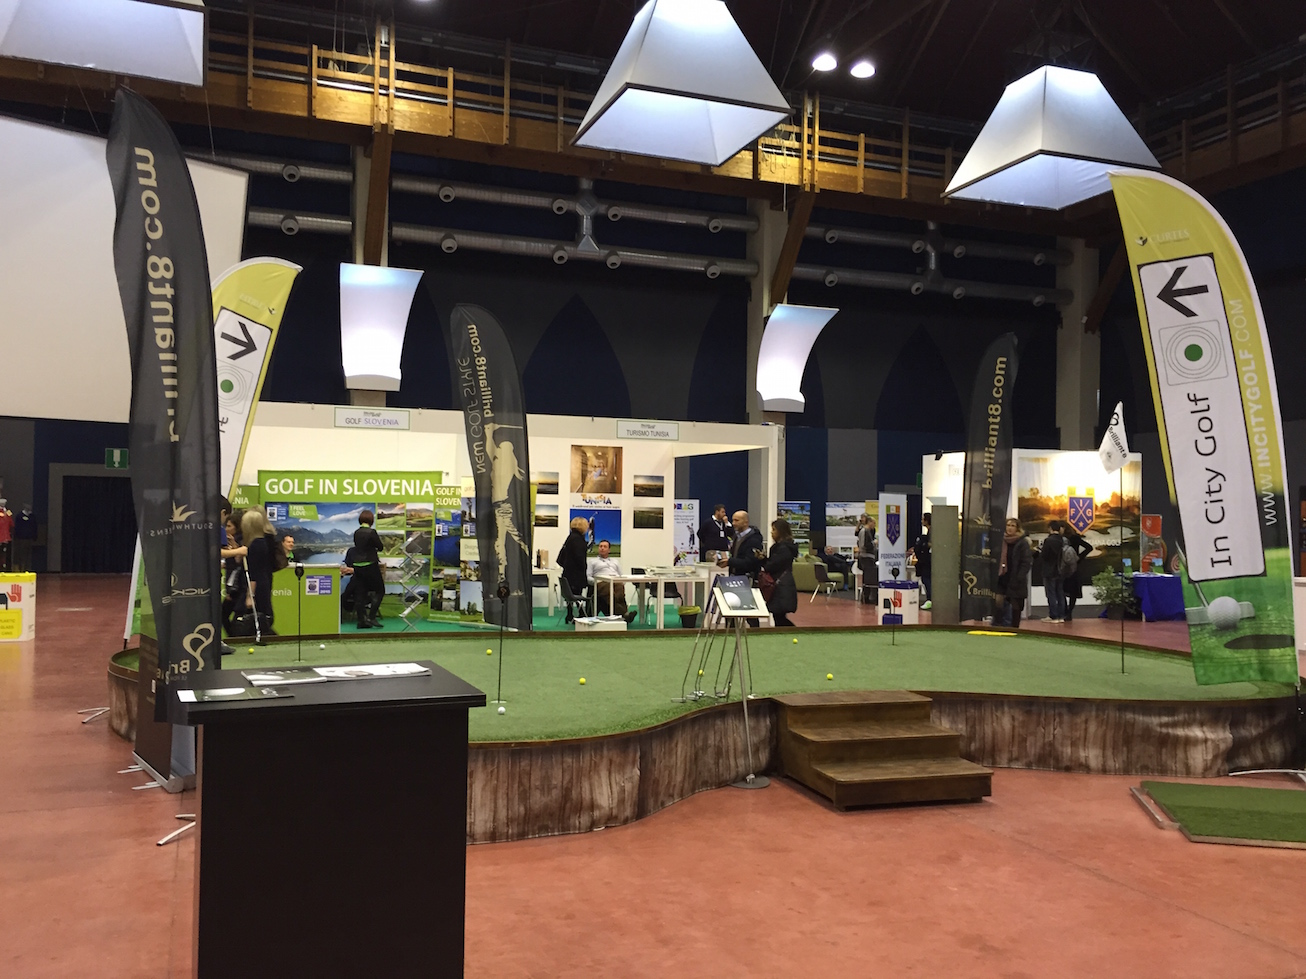 Fiera del Golf Parma 2015 le foto ed i video di Italian Golf Show e le prove dei materiali37 - Fiera del Golf Parma: le foto ed i video di Italian Golf Show